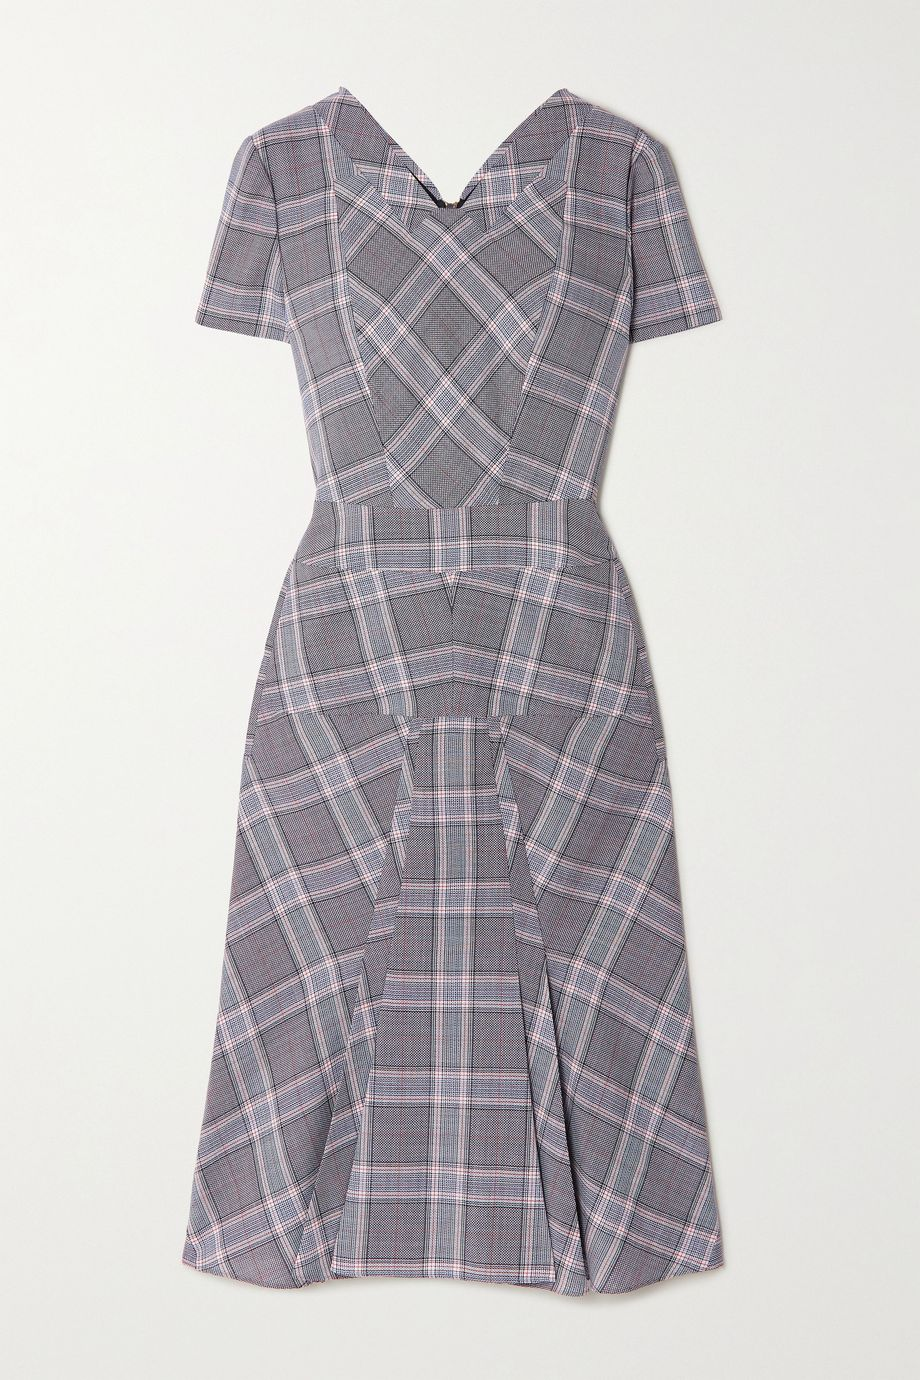 Roland Mouret Bowland checked wool dress